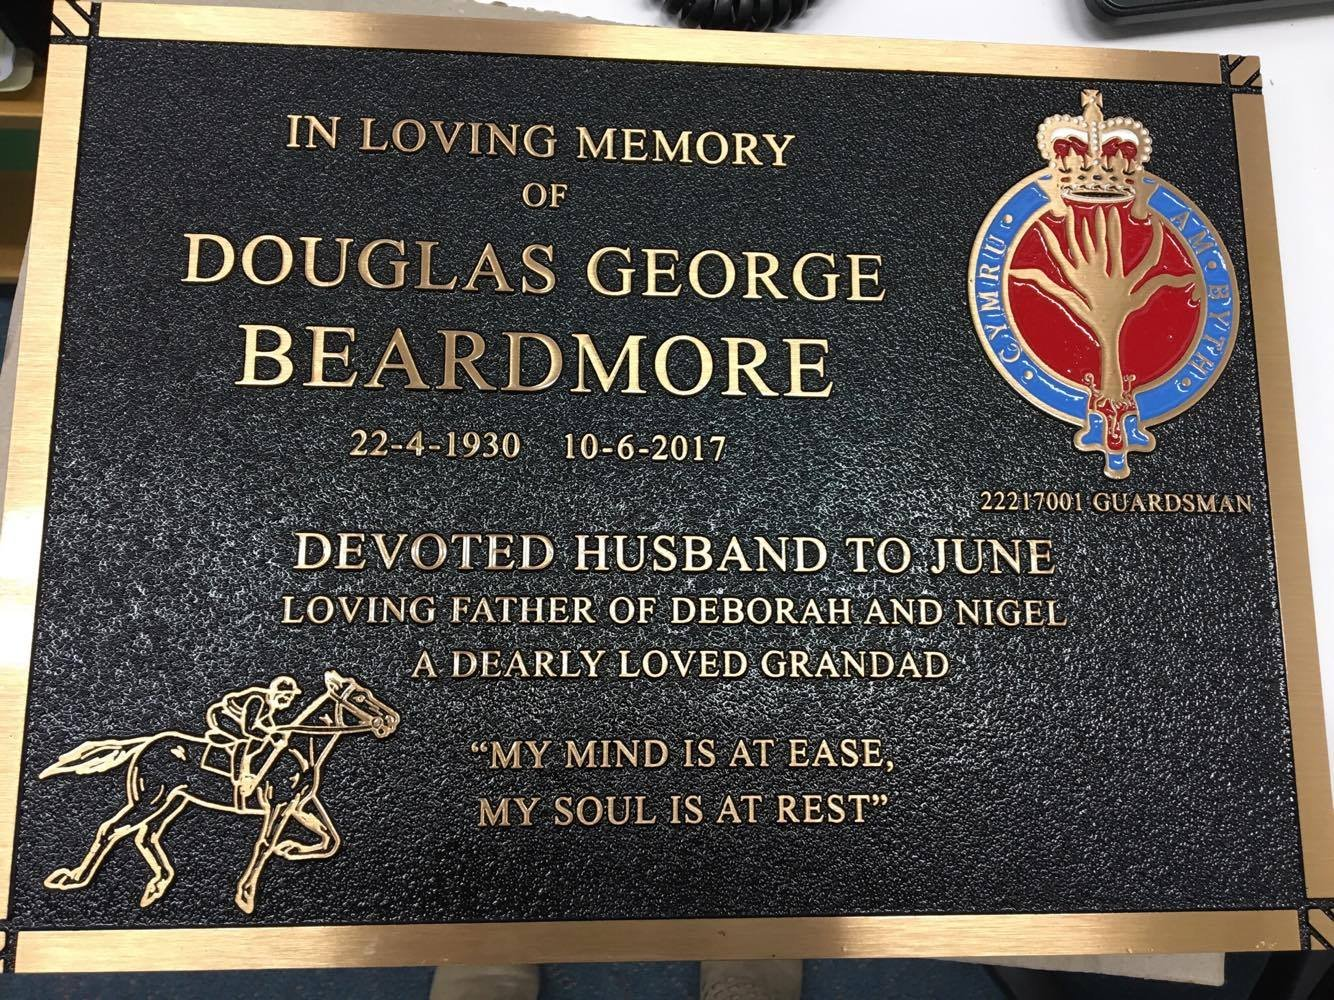 Memorial Placque Douglas George Beardmore Guardsman 22217001